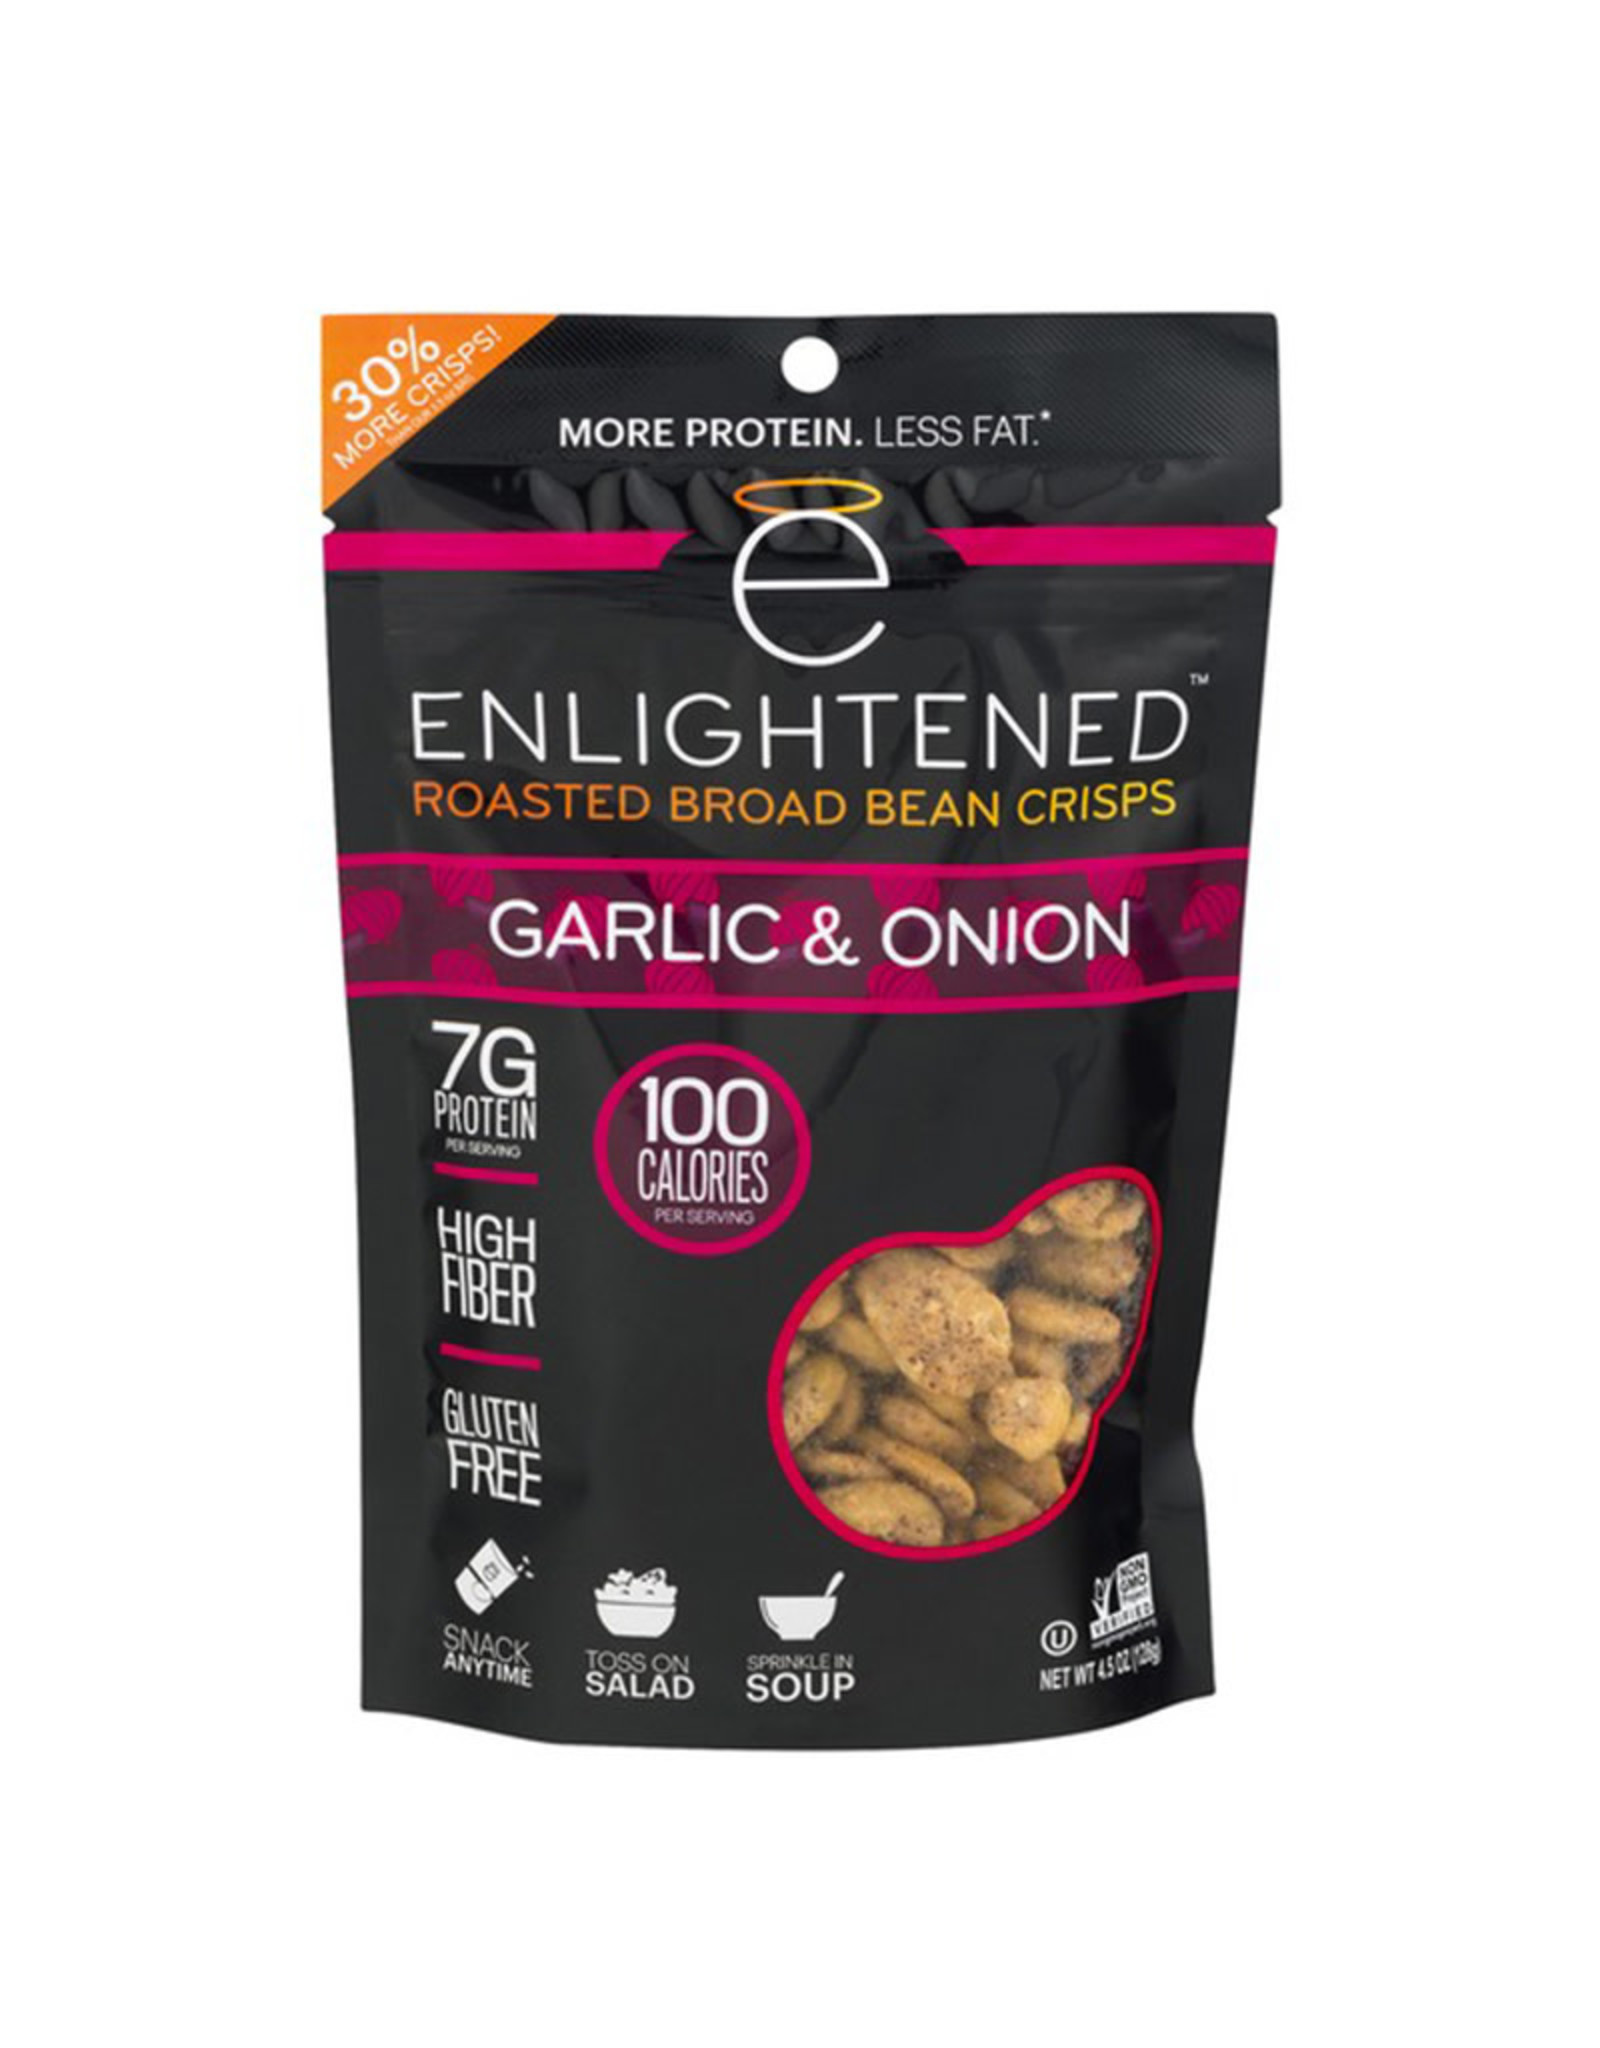 Enlightened Enlightened - Roasted Broad Bean Crisps, Garlic & Onion